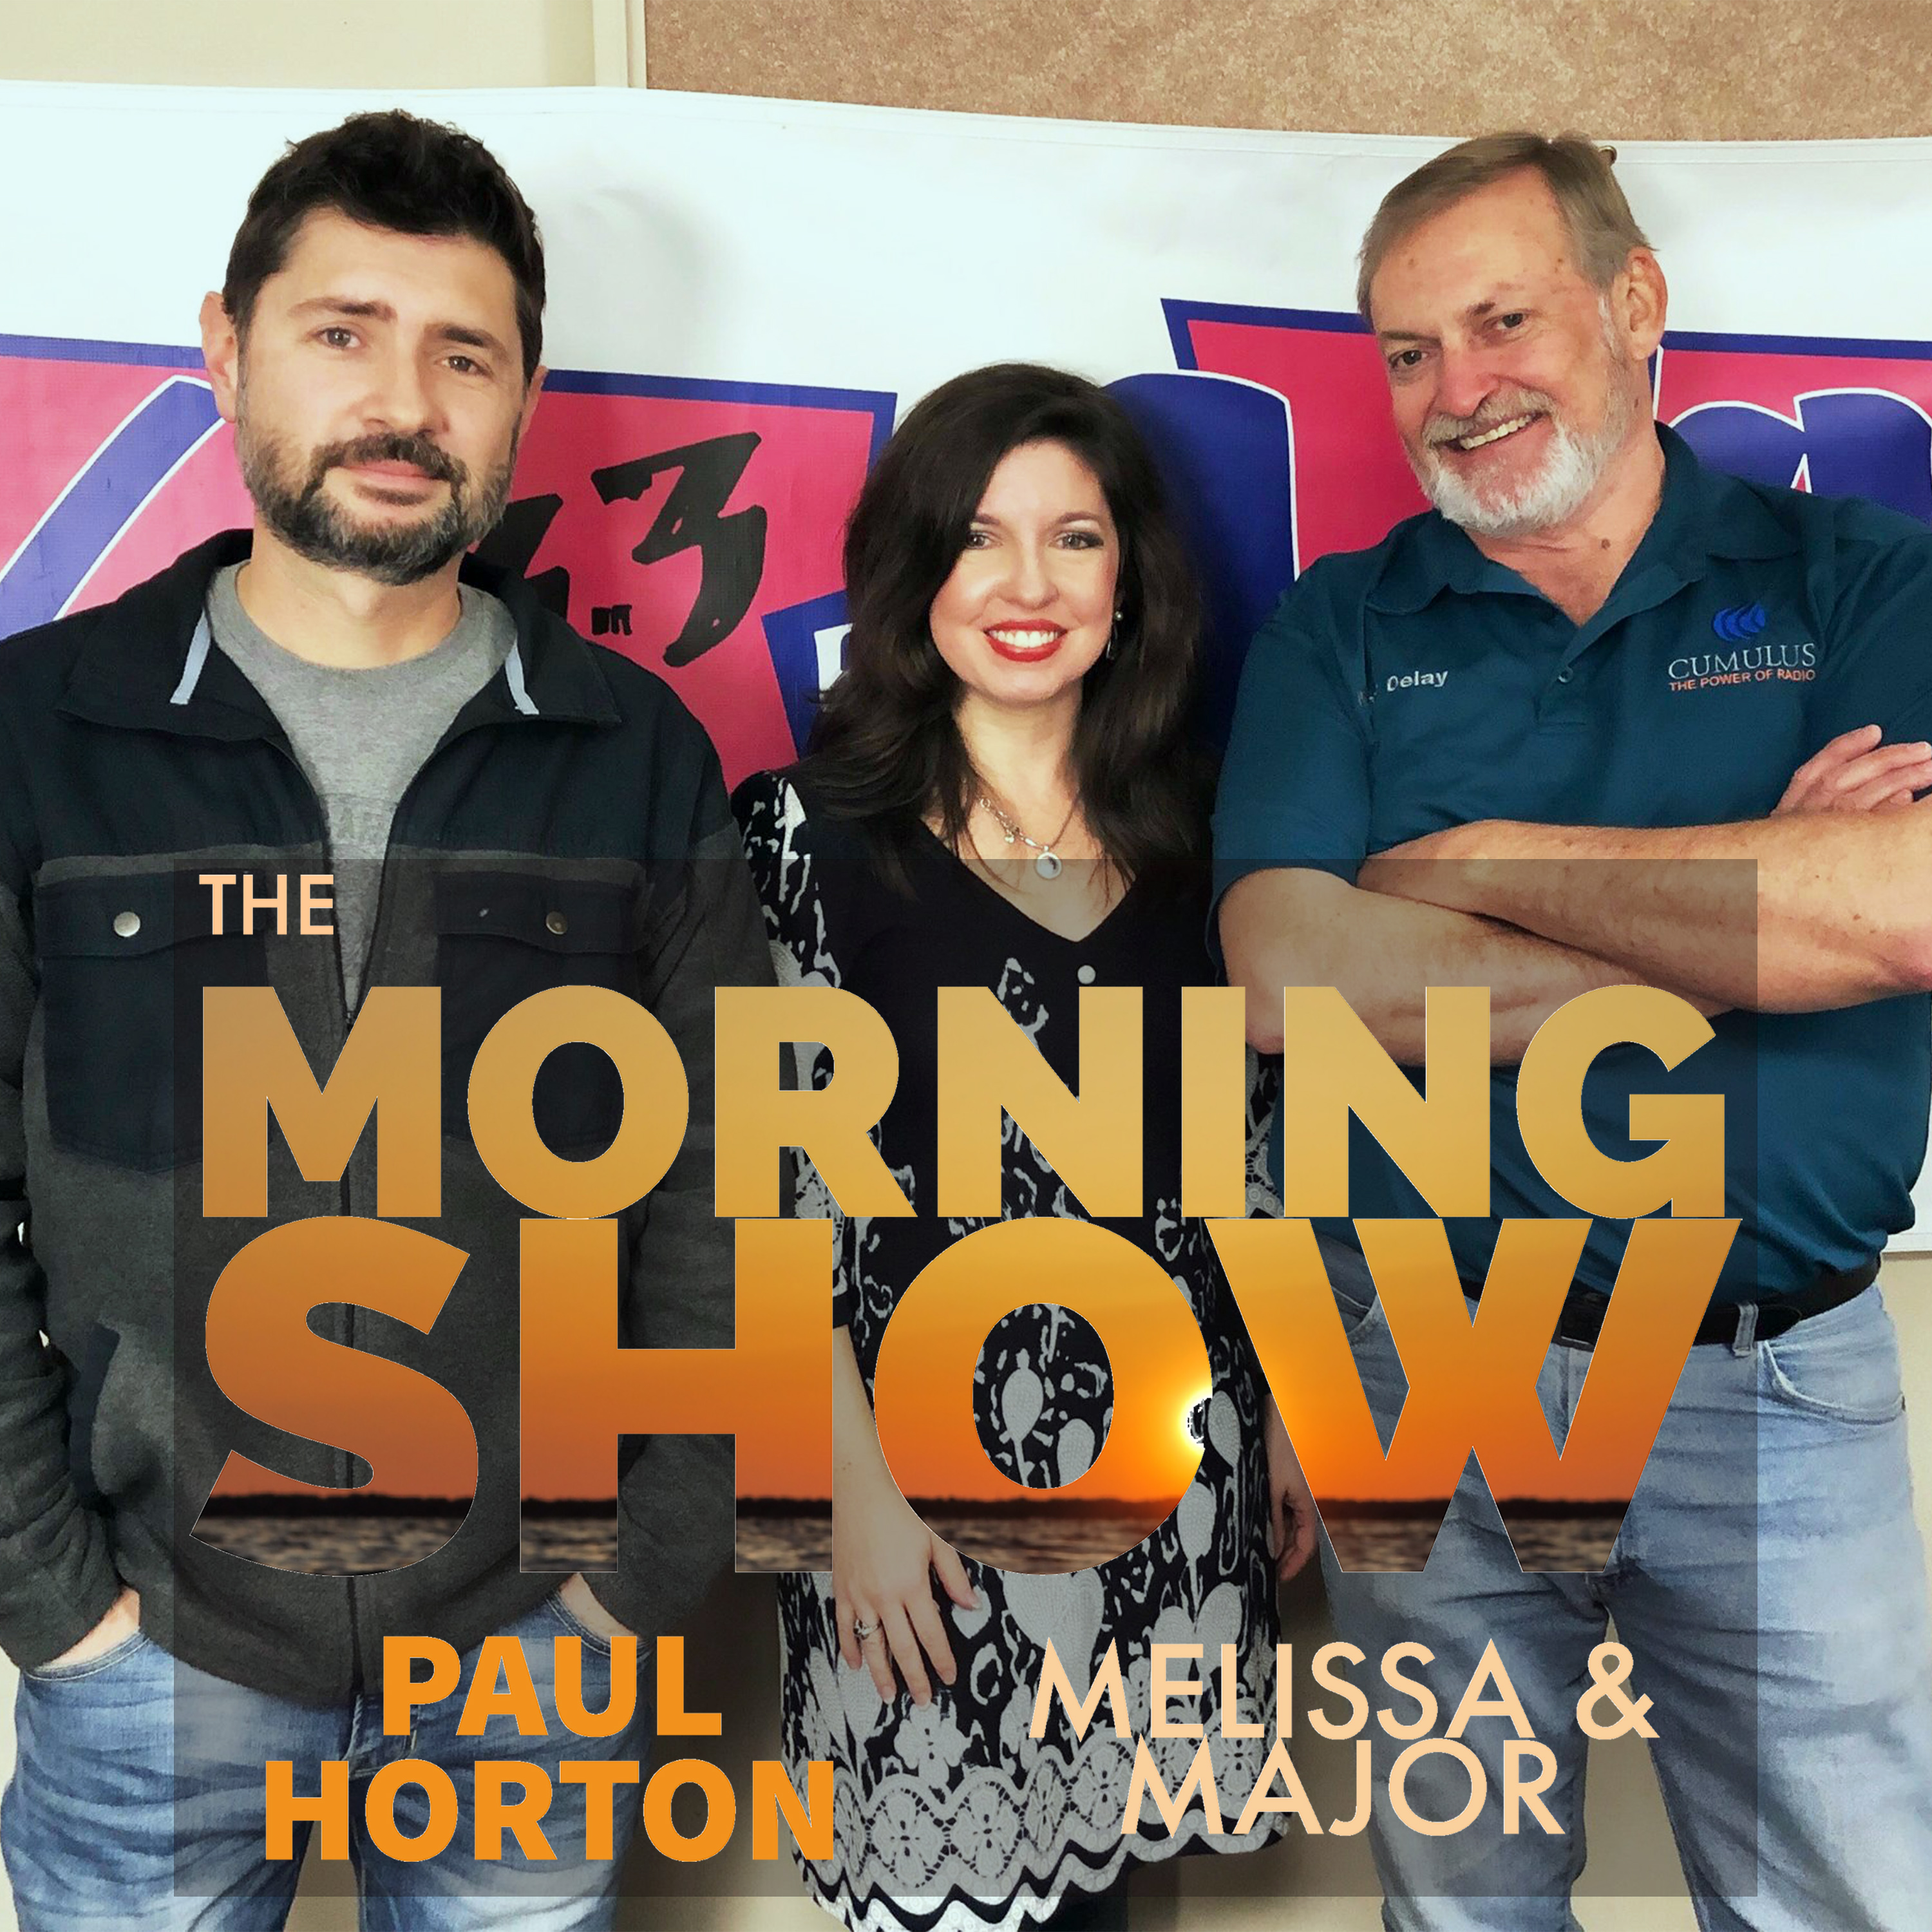 The Morning Show with Paul Horton